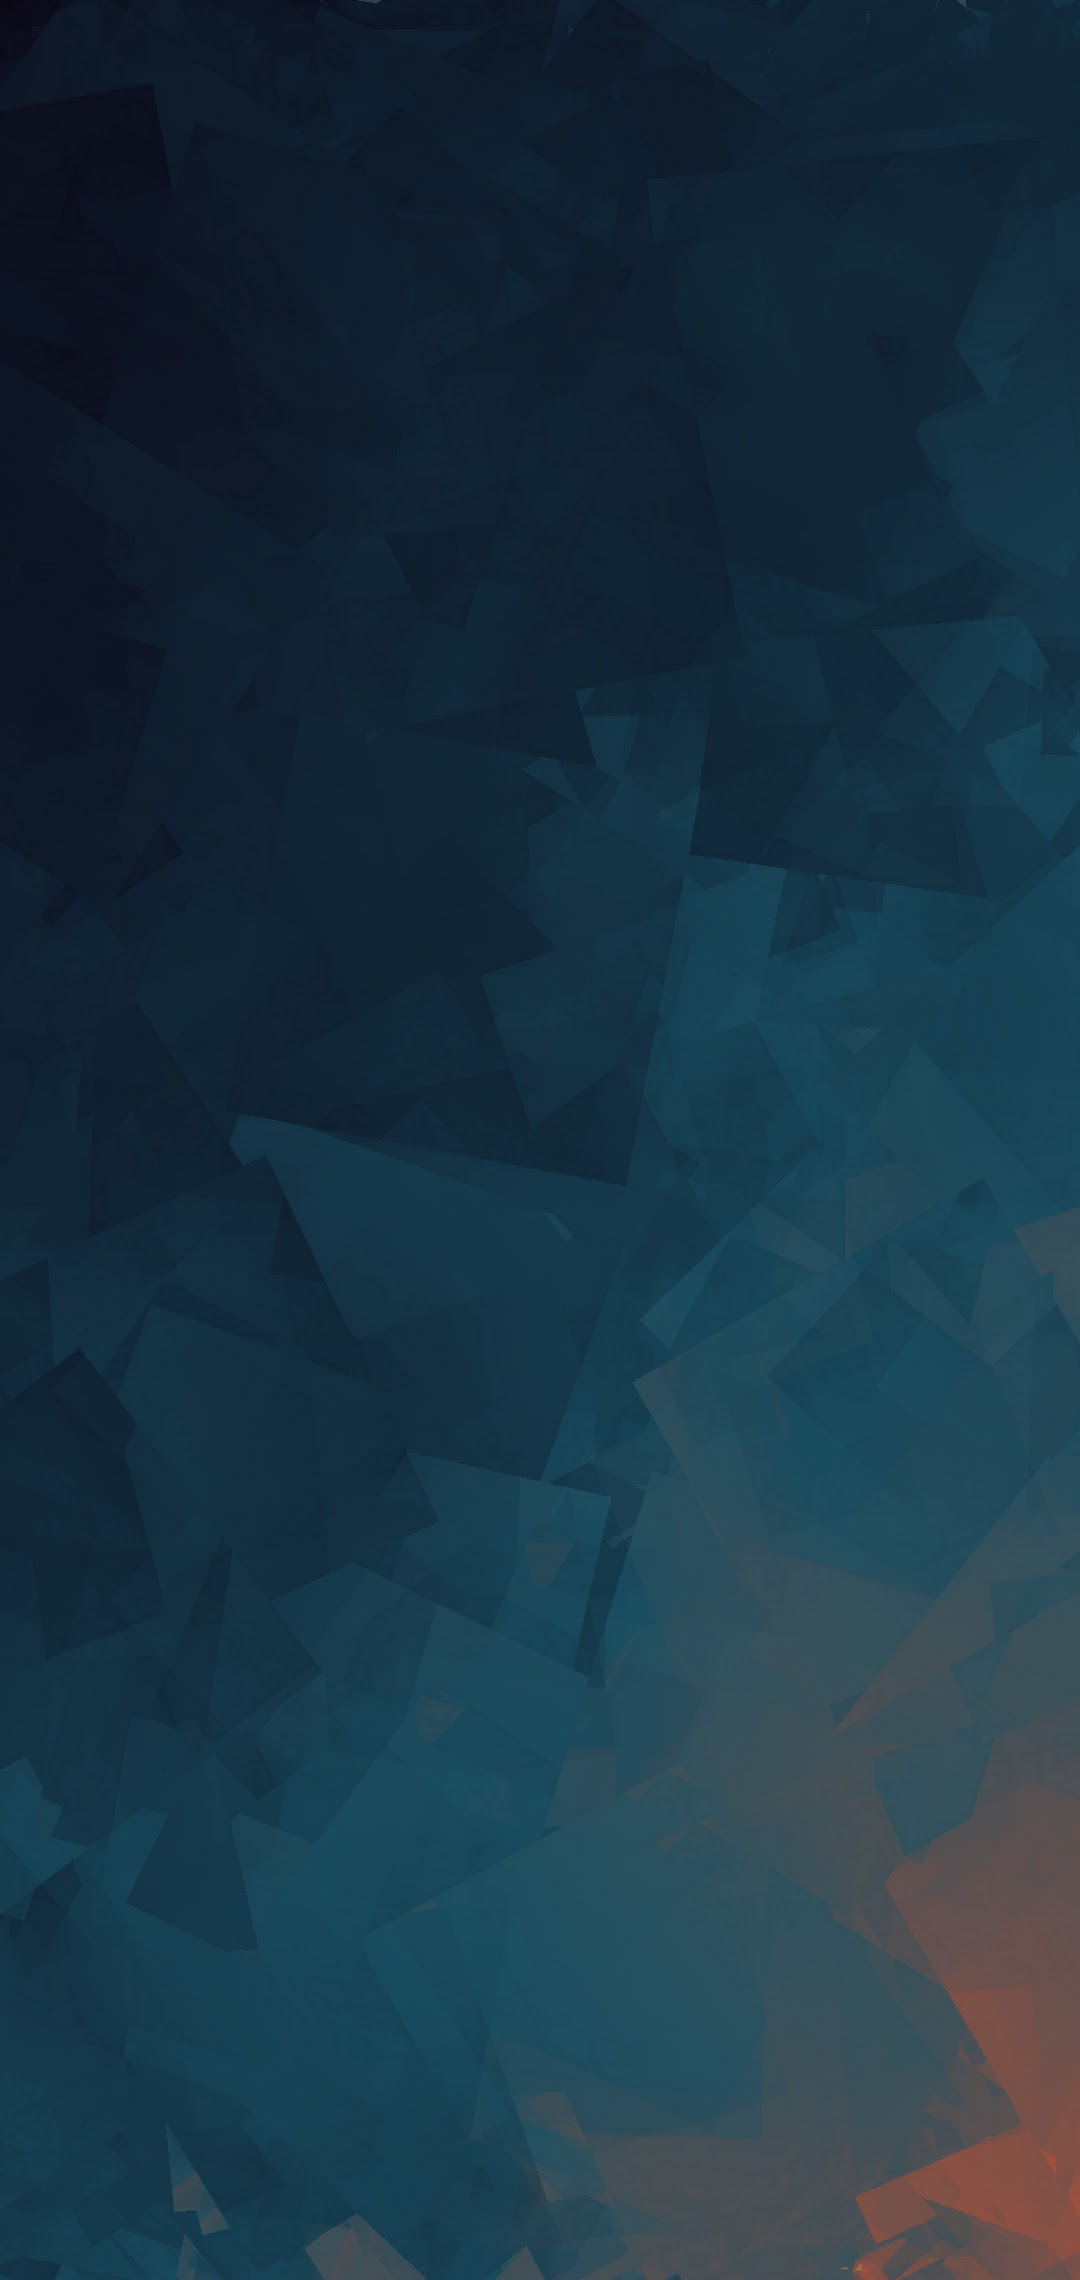 Abstract Background 4k Wallpaper 4